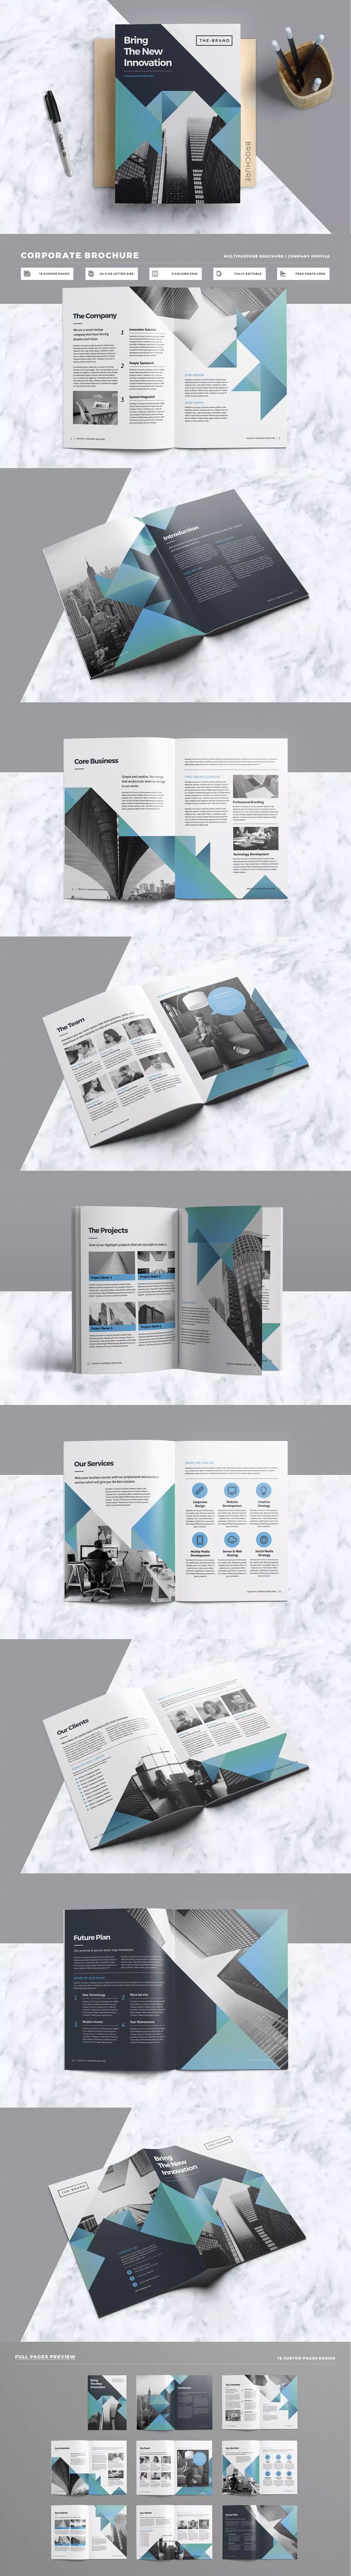 Brochure Template InDesign INDD - A4 & US Letter Size